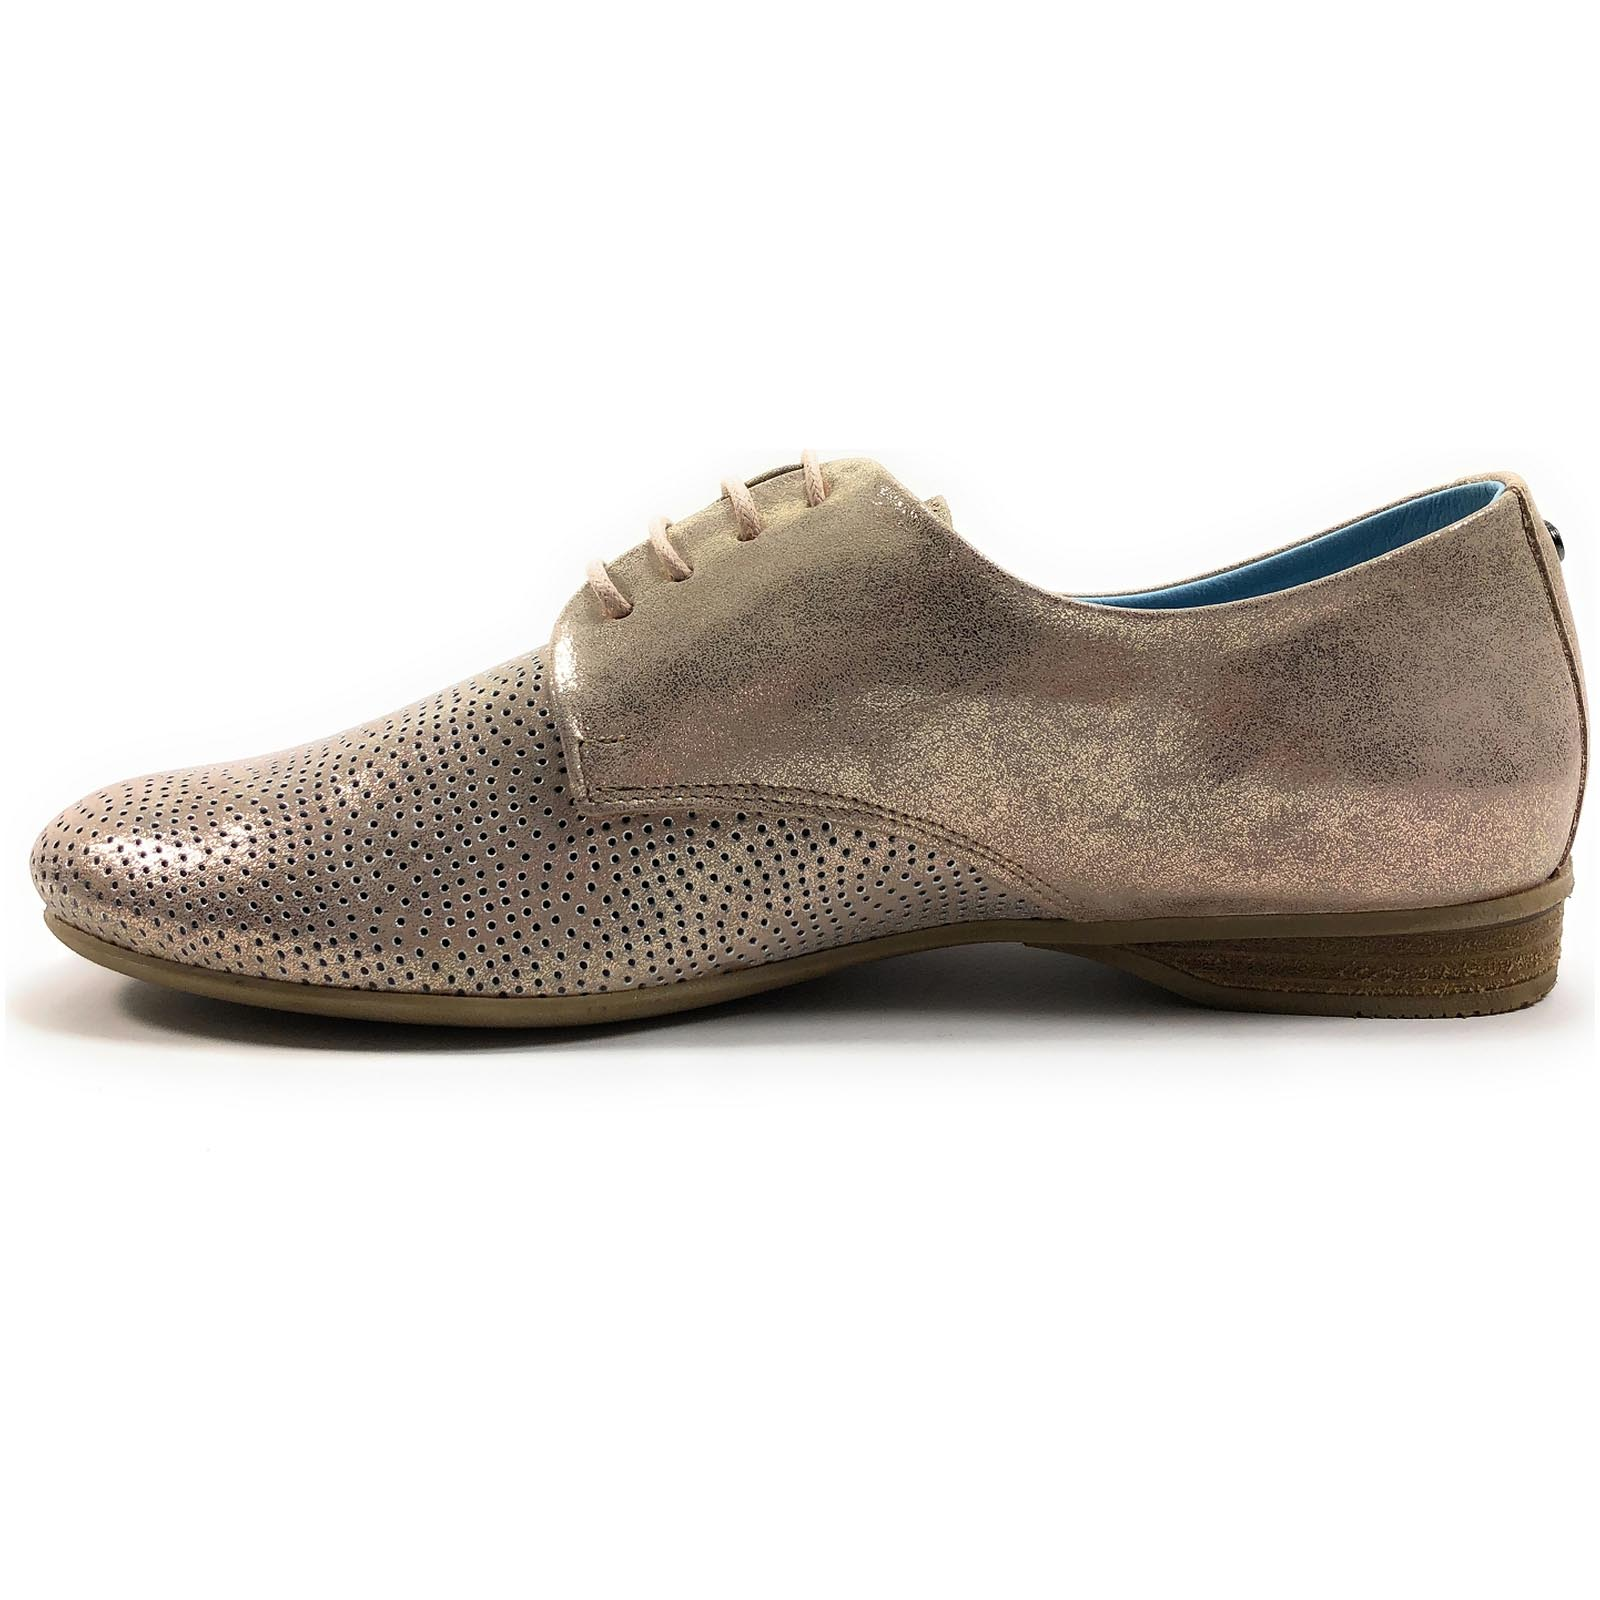 Dorking chaussures ville lacets 7400.ma argent8007301_6